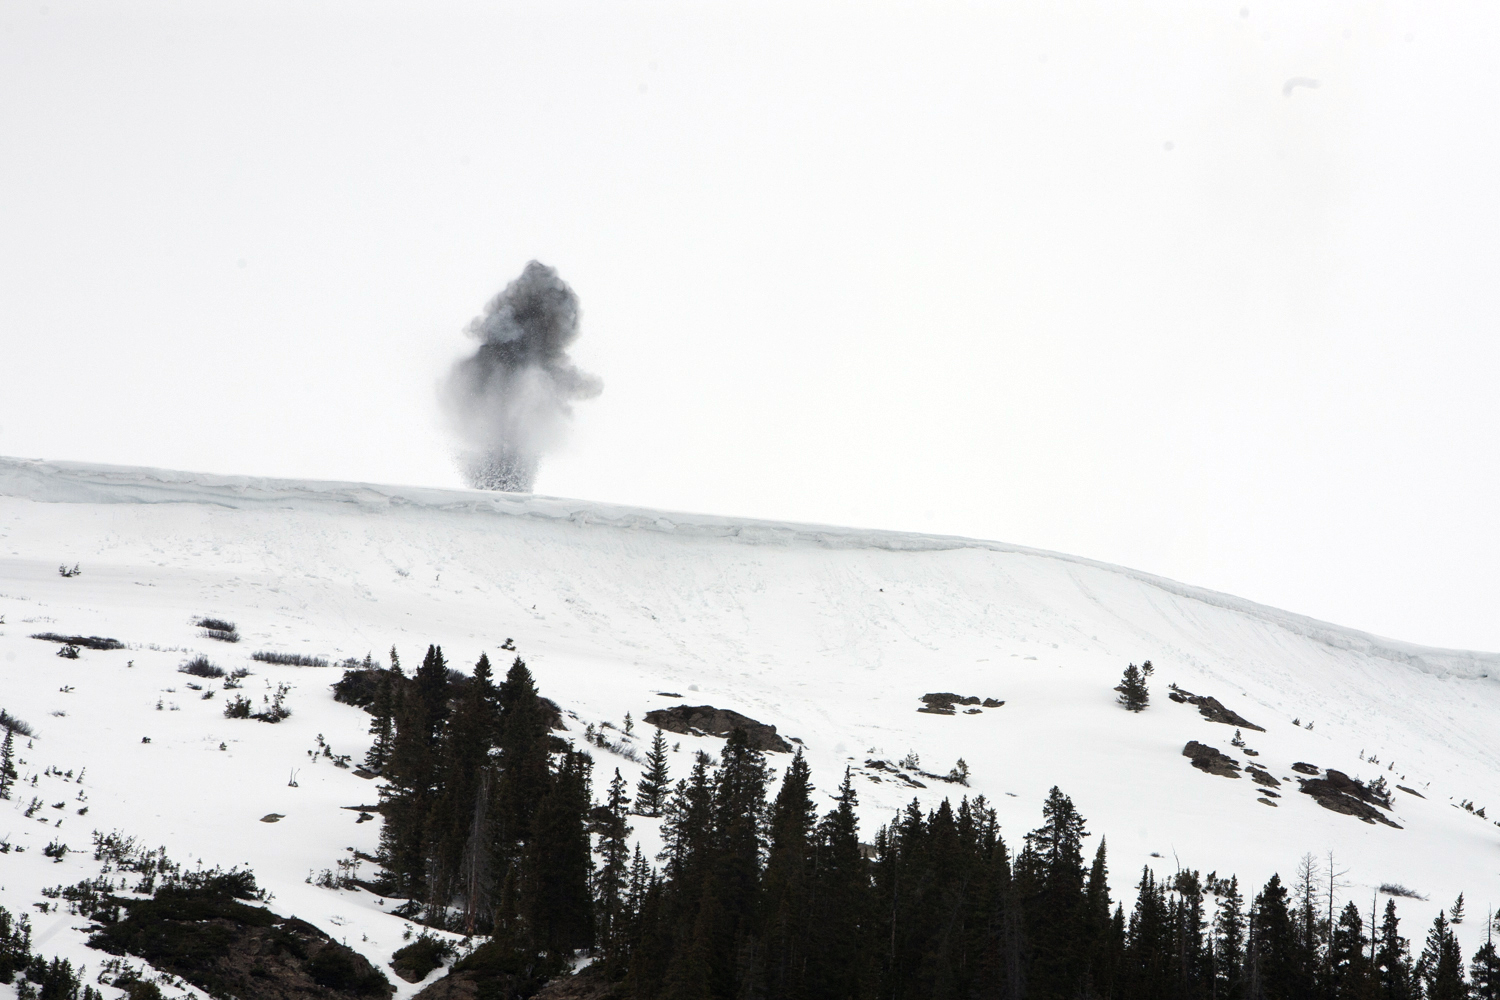 Photograph of a charge detonating high on a snowy slope in Colorado